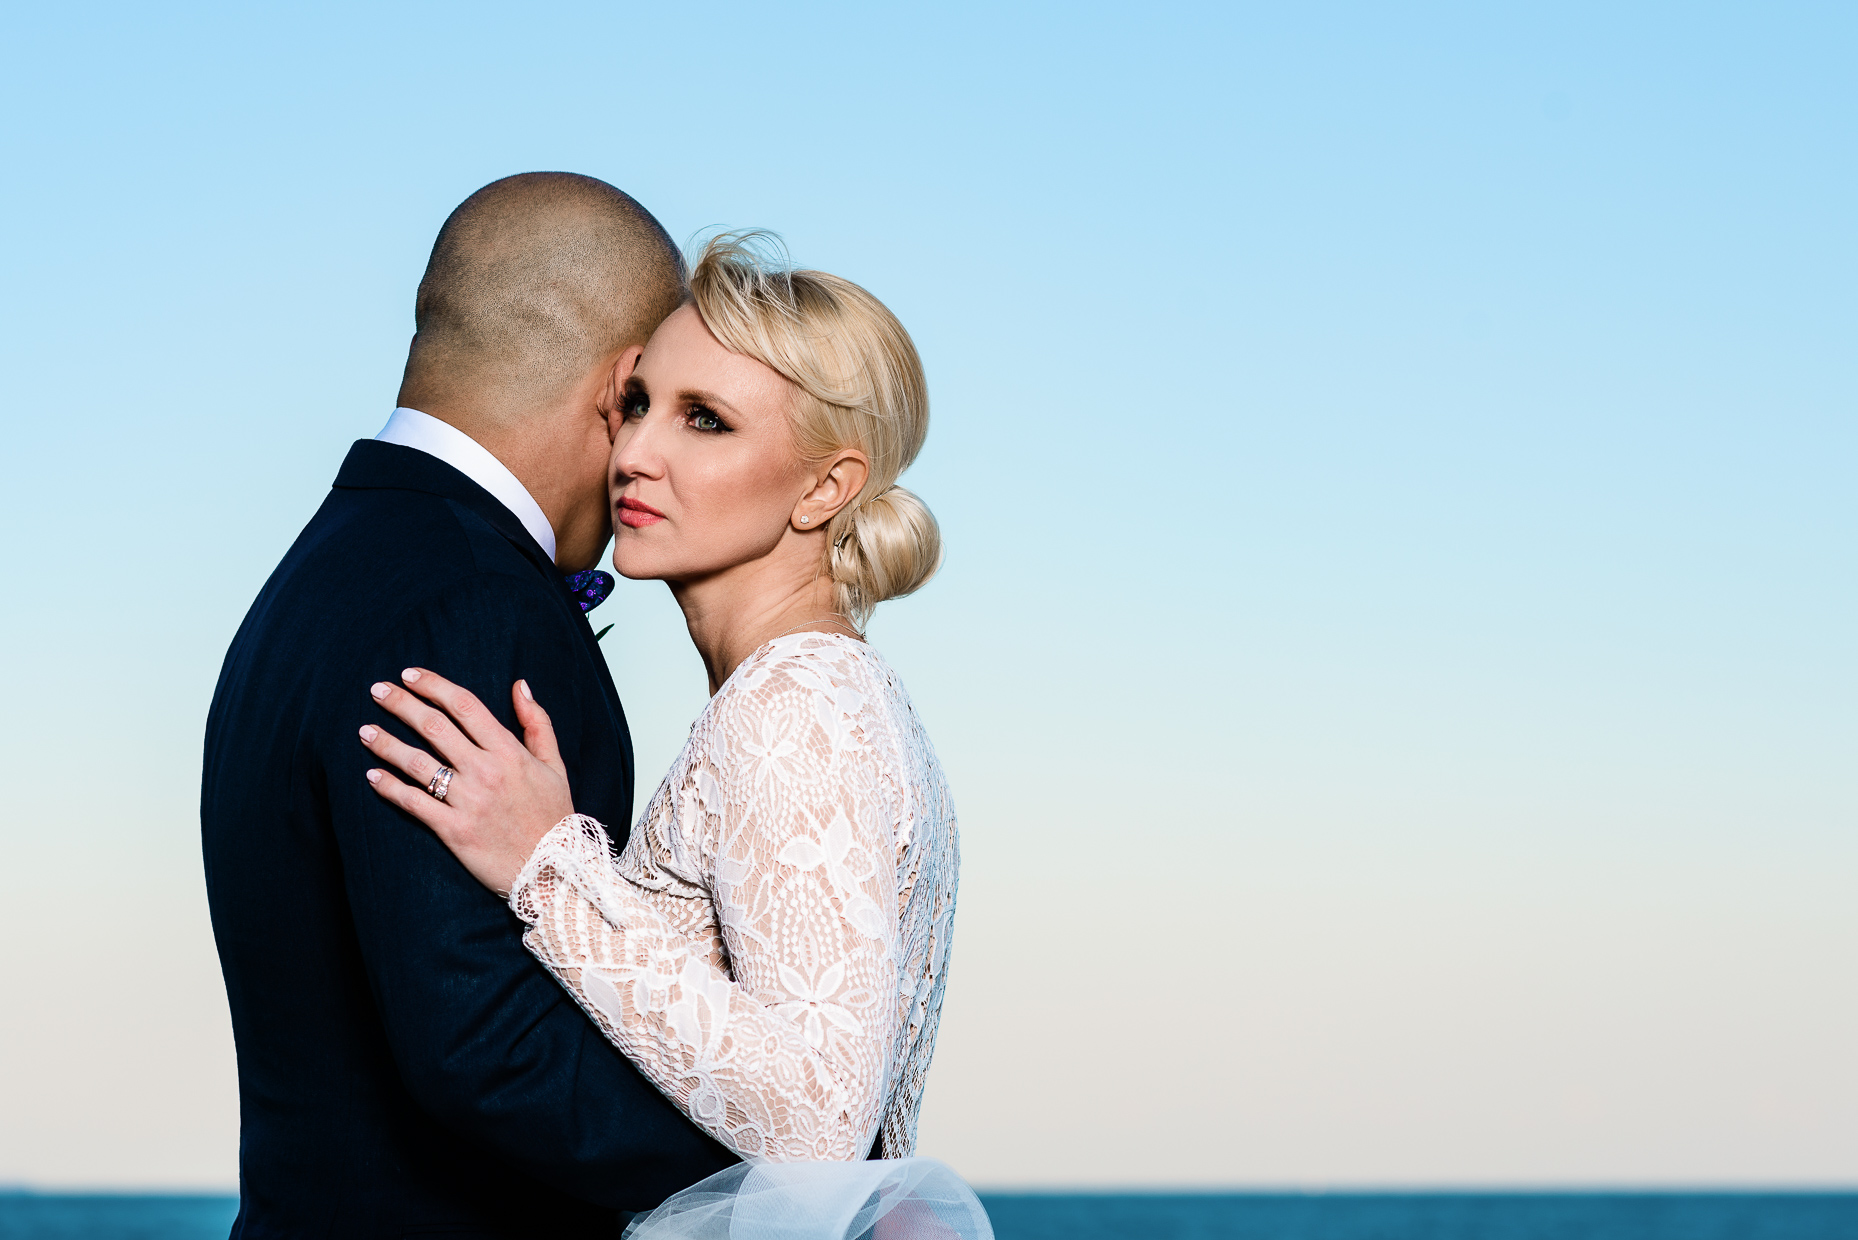 fine-art-wedding-portrait-austin-texas-beach-destination